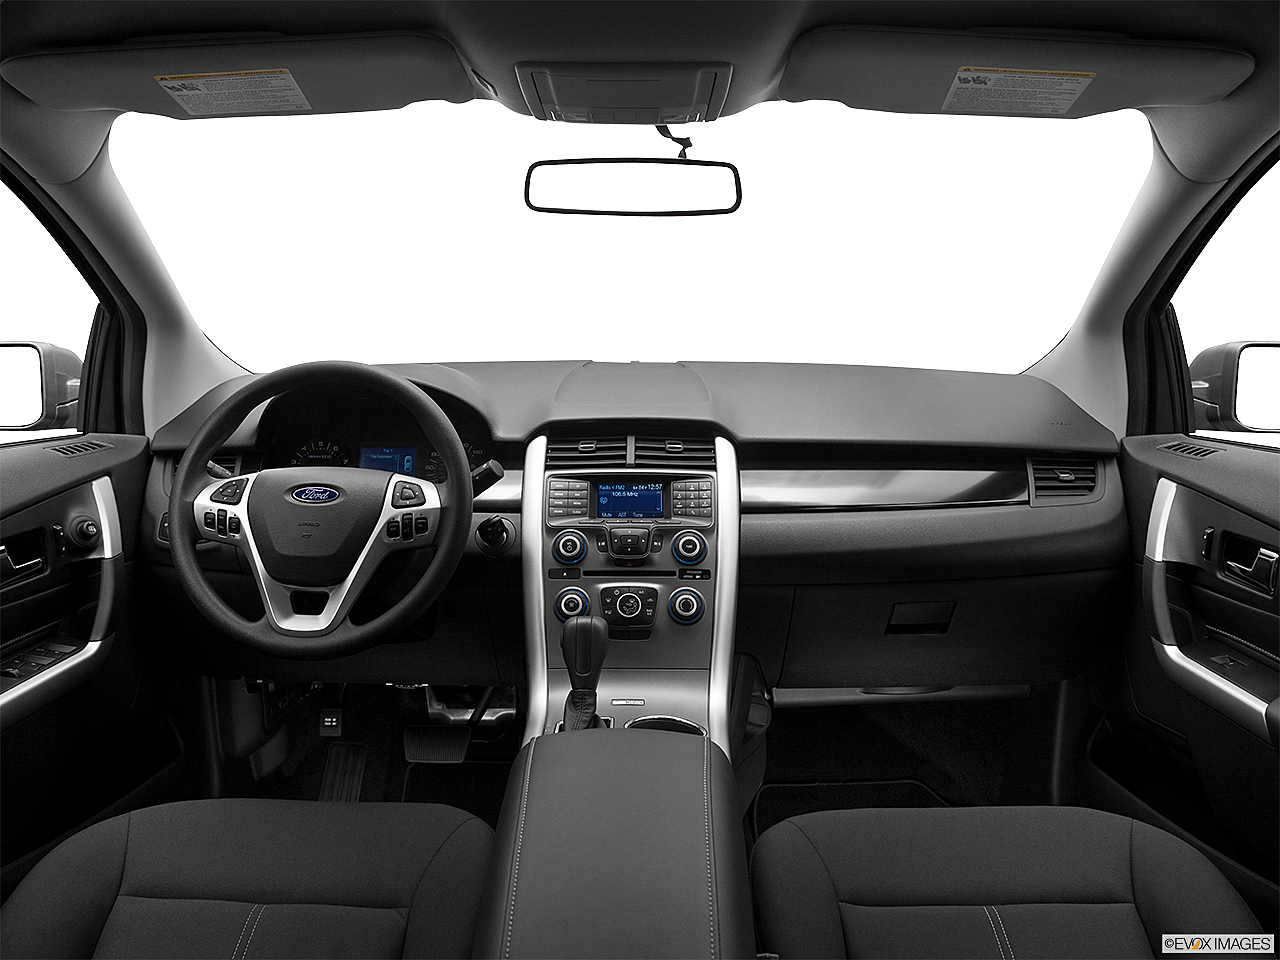 2013 Ford Edge SE, centered wide dash shot